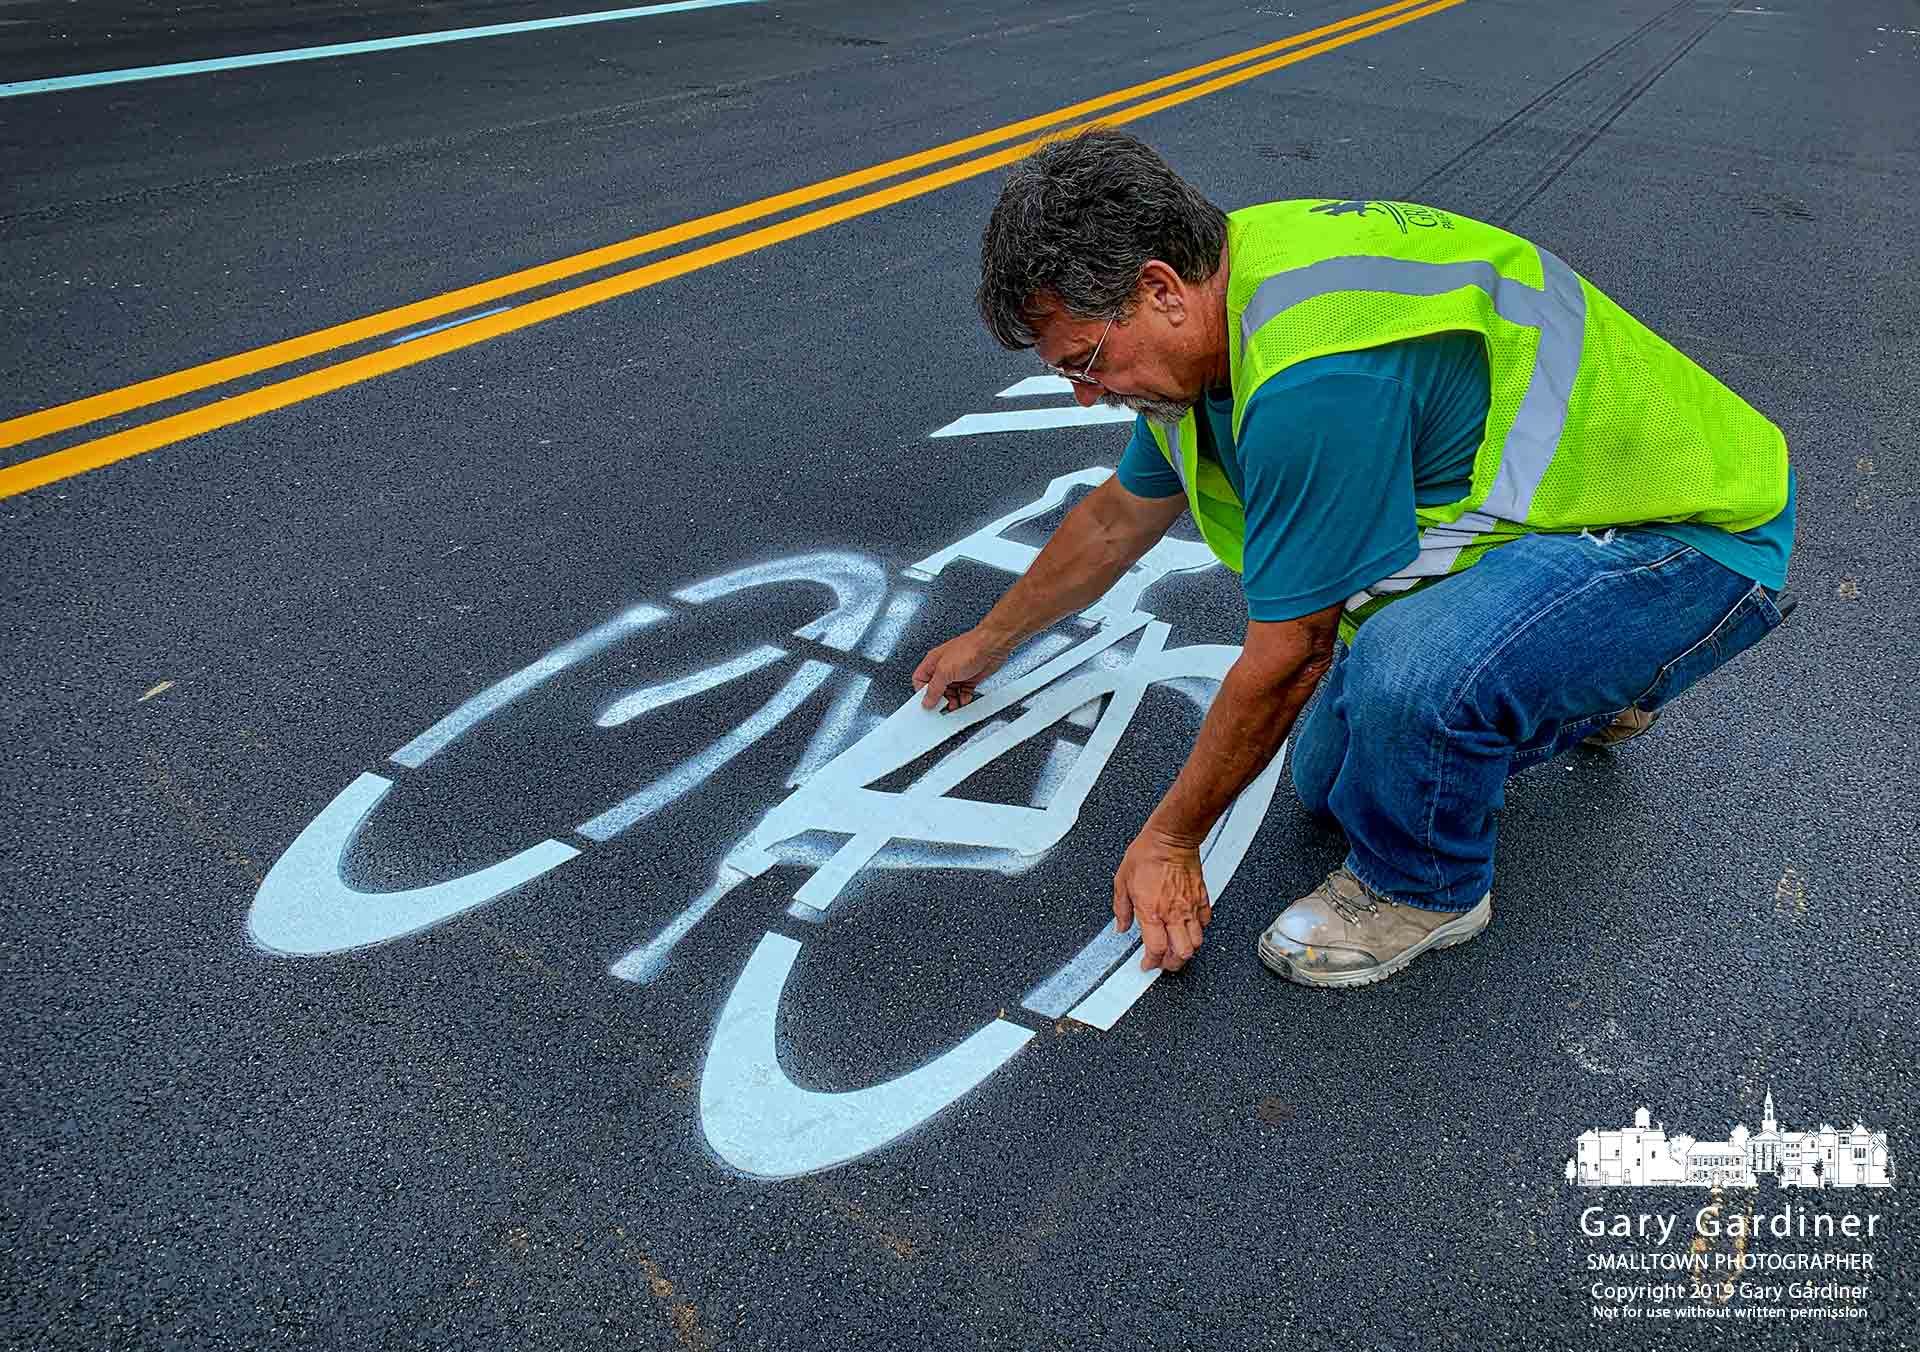 A worker places section of plasticized paint strips in the shape of a bicycle in the northbound lane of McCorkle Blvd. as the construction worked to reopen the street before the commuter rush at the end of the day. My Final Photo for Sept. 13, 2019.